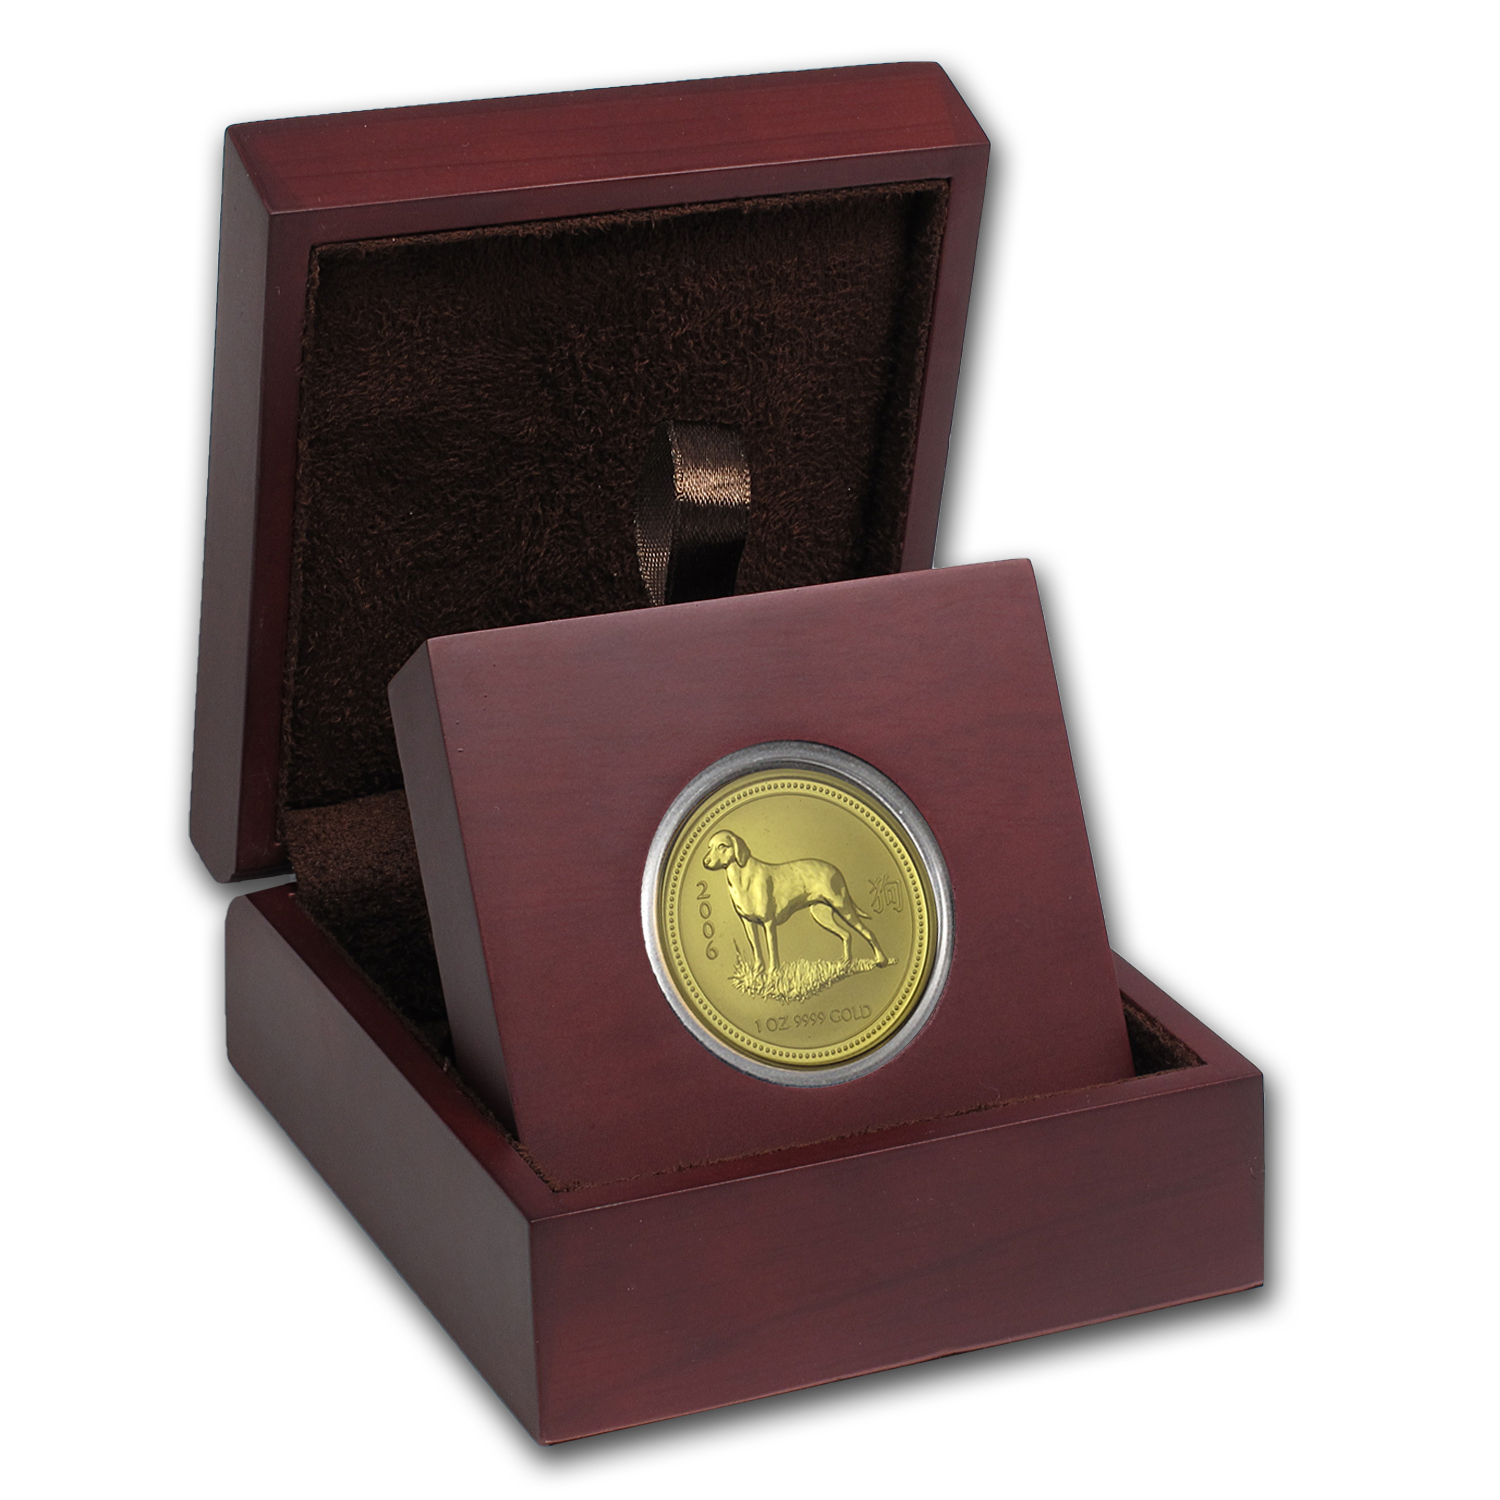 APMEX Wood Gift Box - 1 oz Perth Mint Gold Coin Series 1